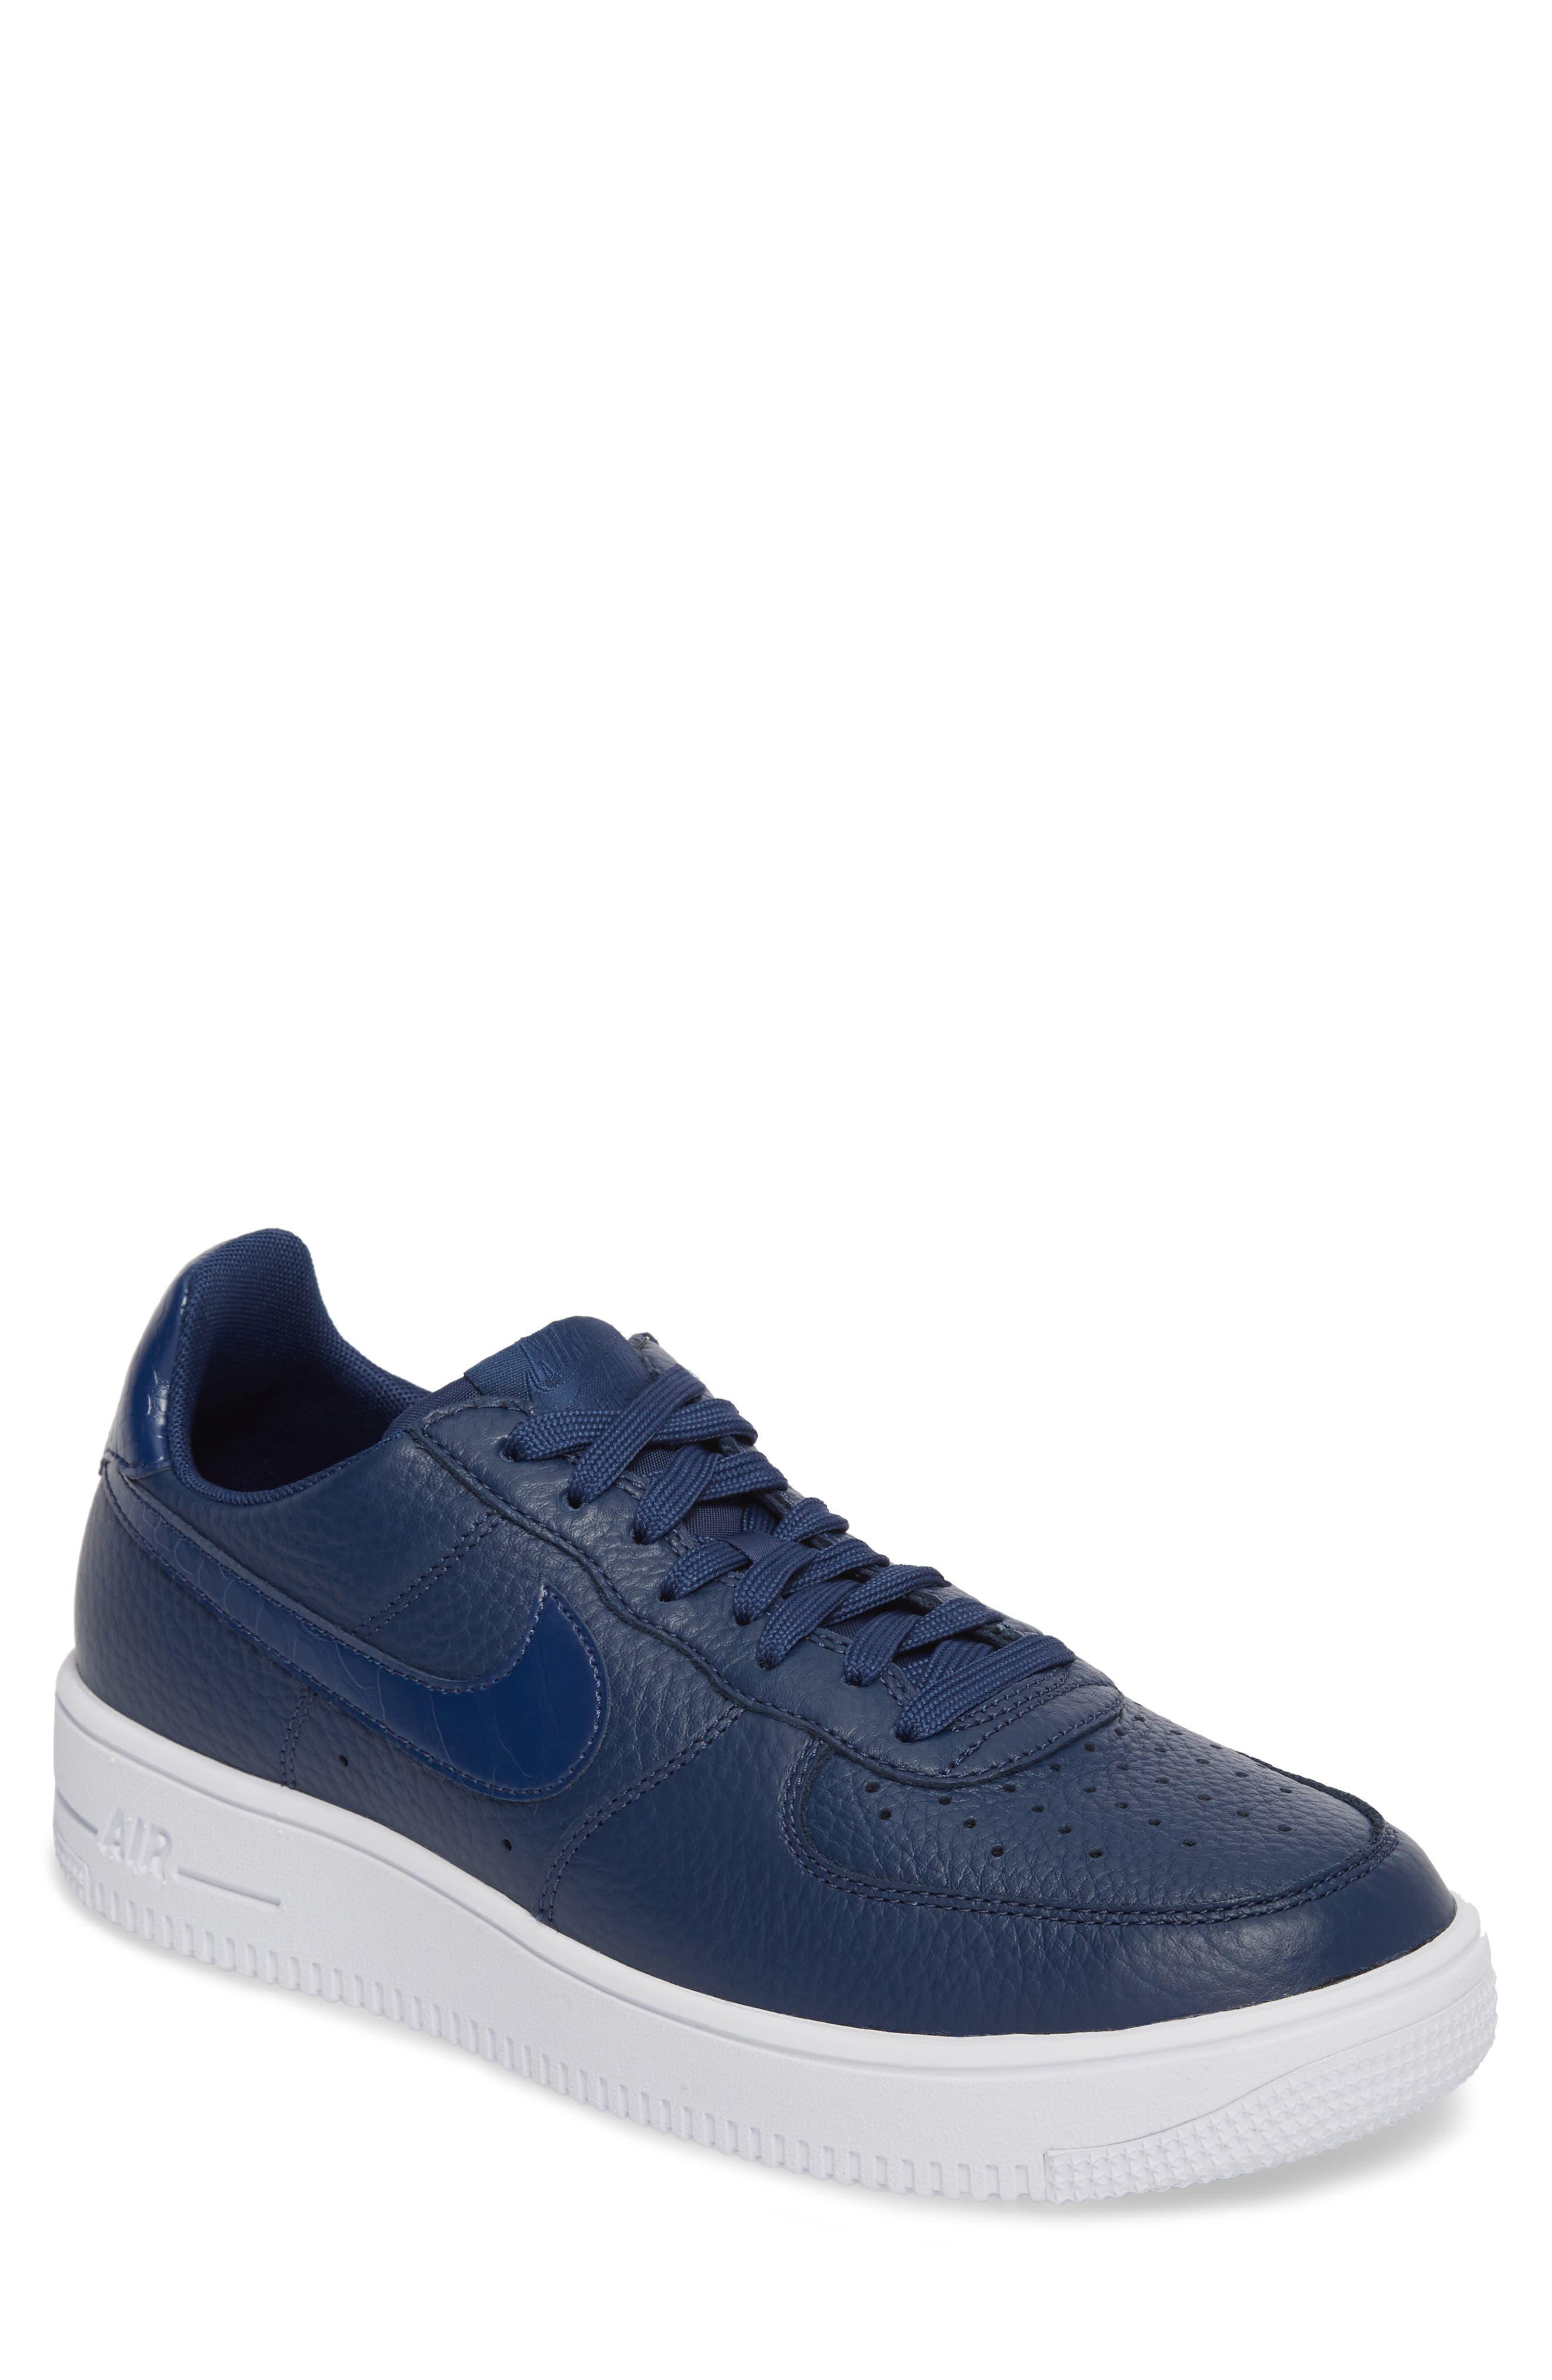 Air Force 1 Ultraforce Sneaker,                         Main,                         color, Navy/ Navy/ White